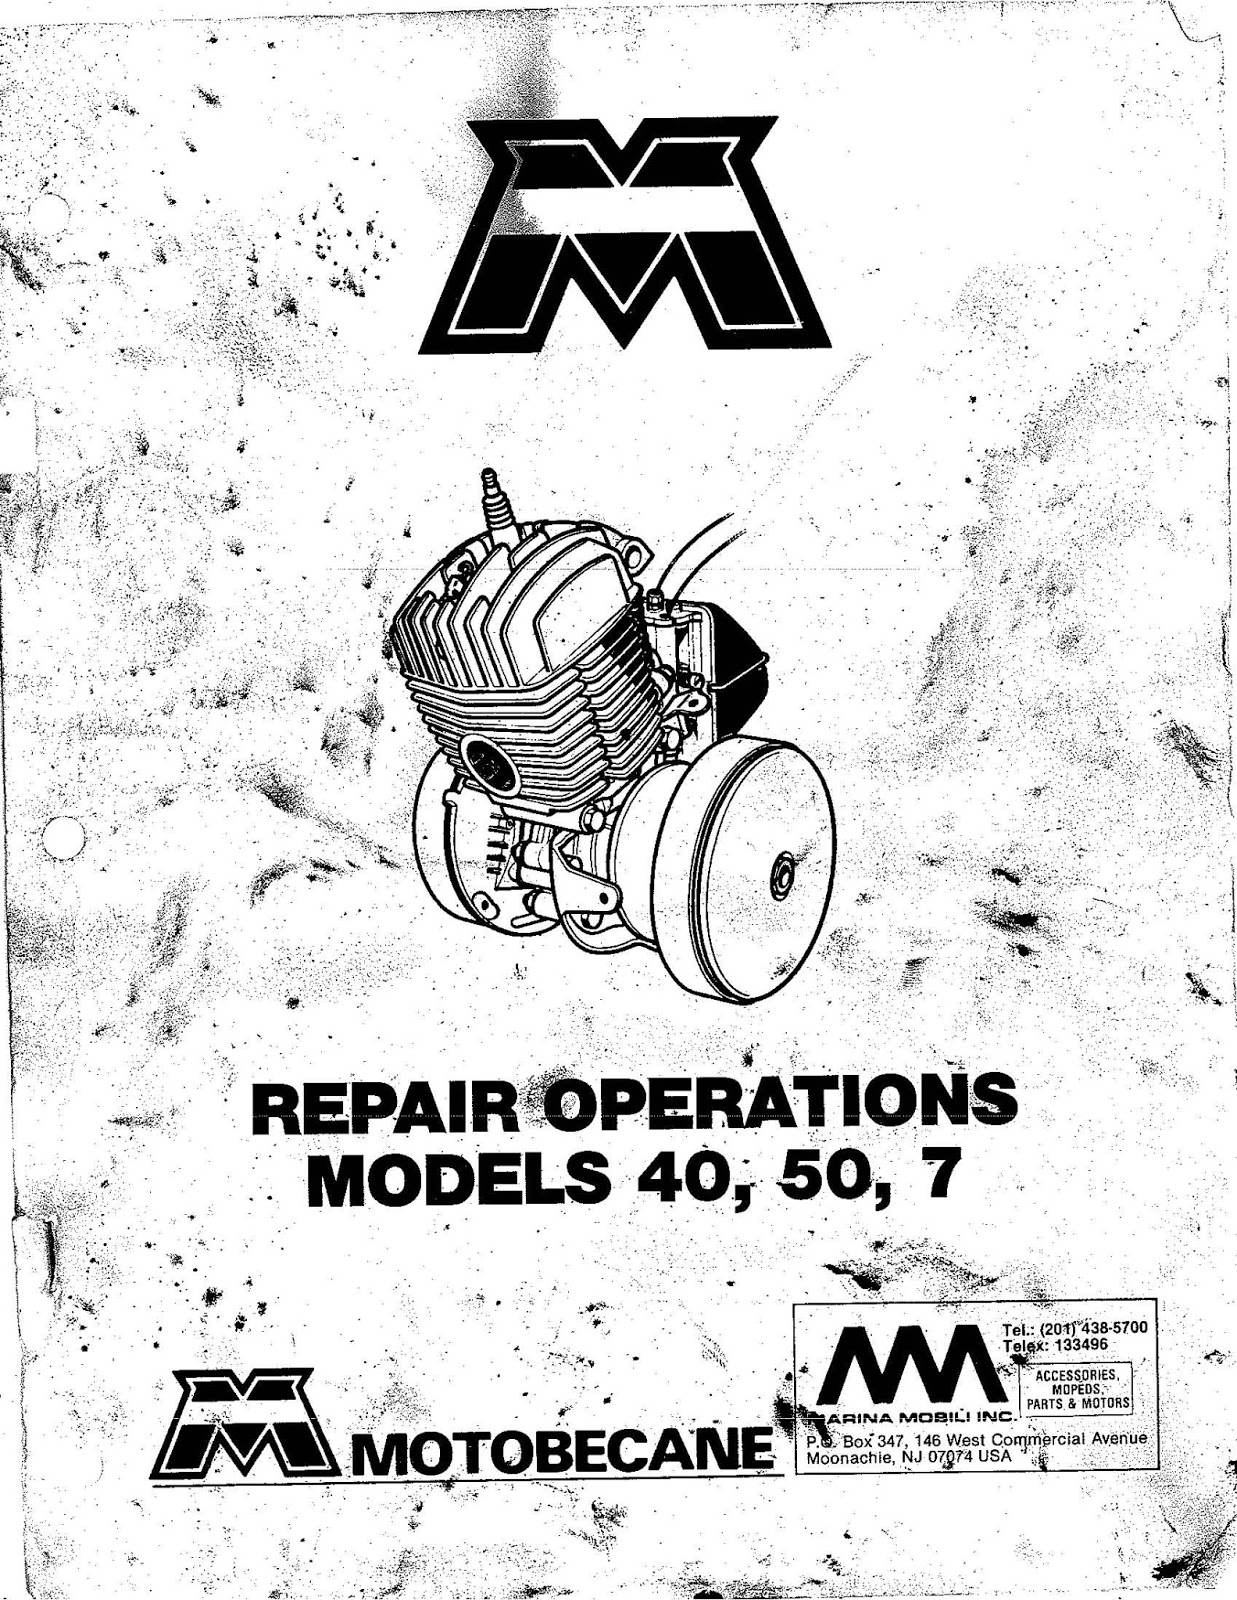 OB1 Repairs: Motobecane Service Manual